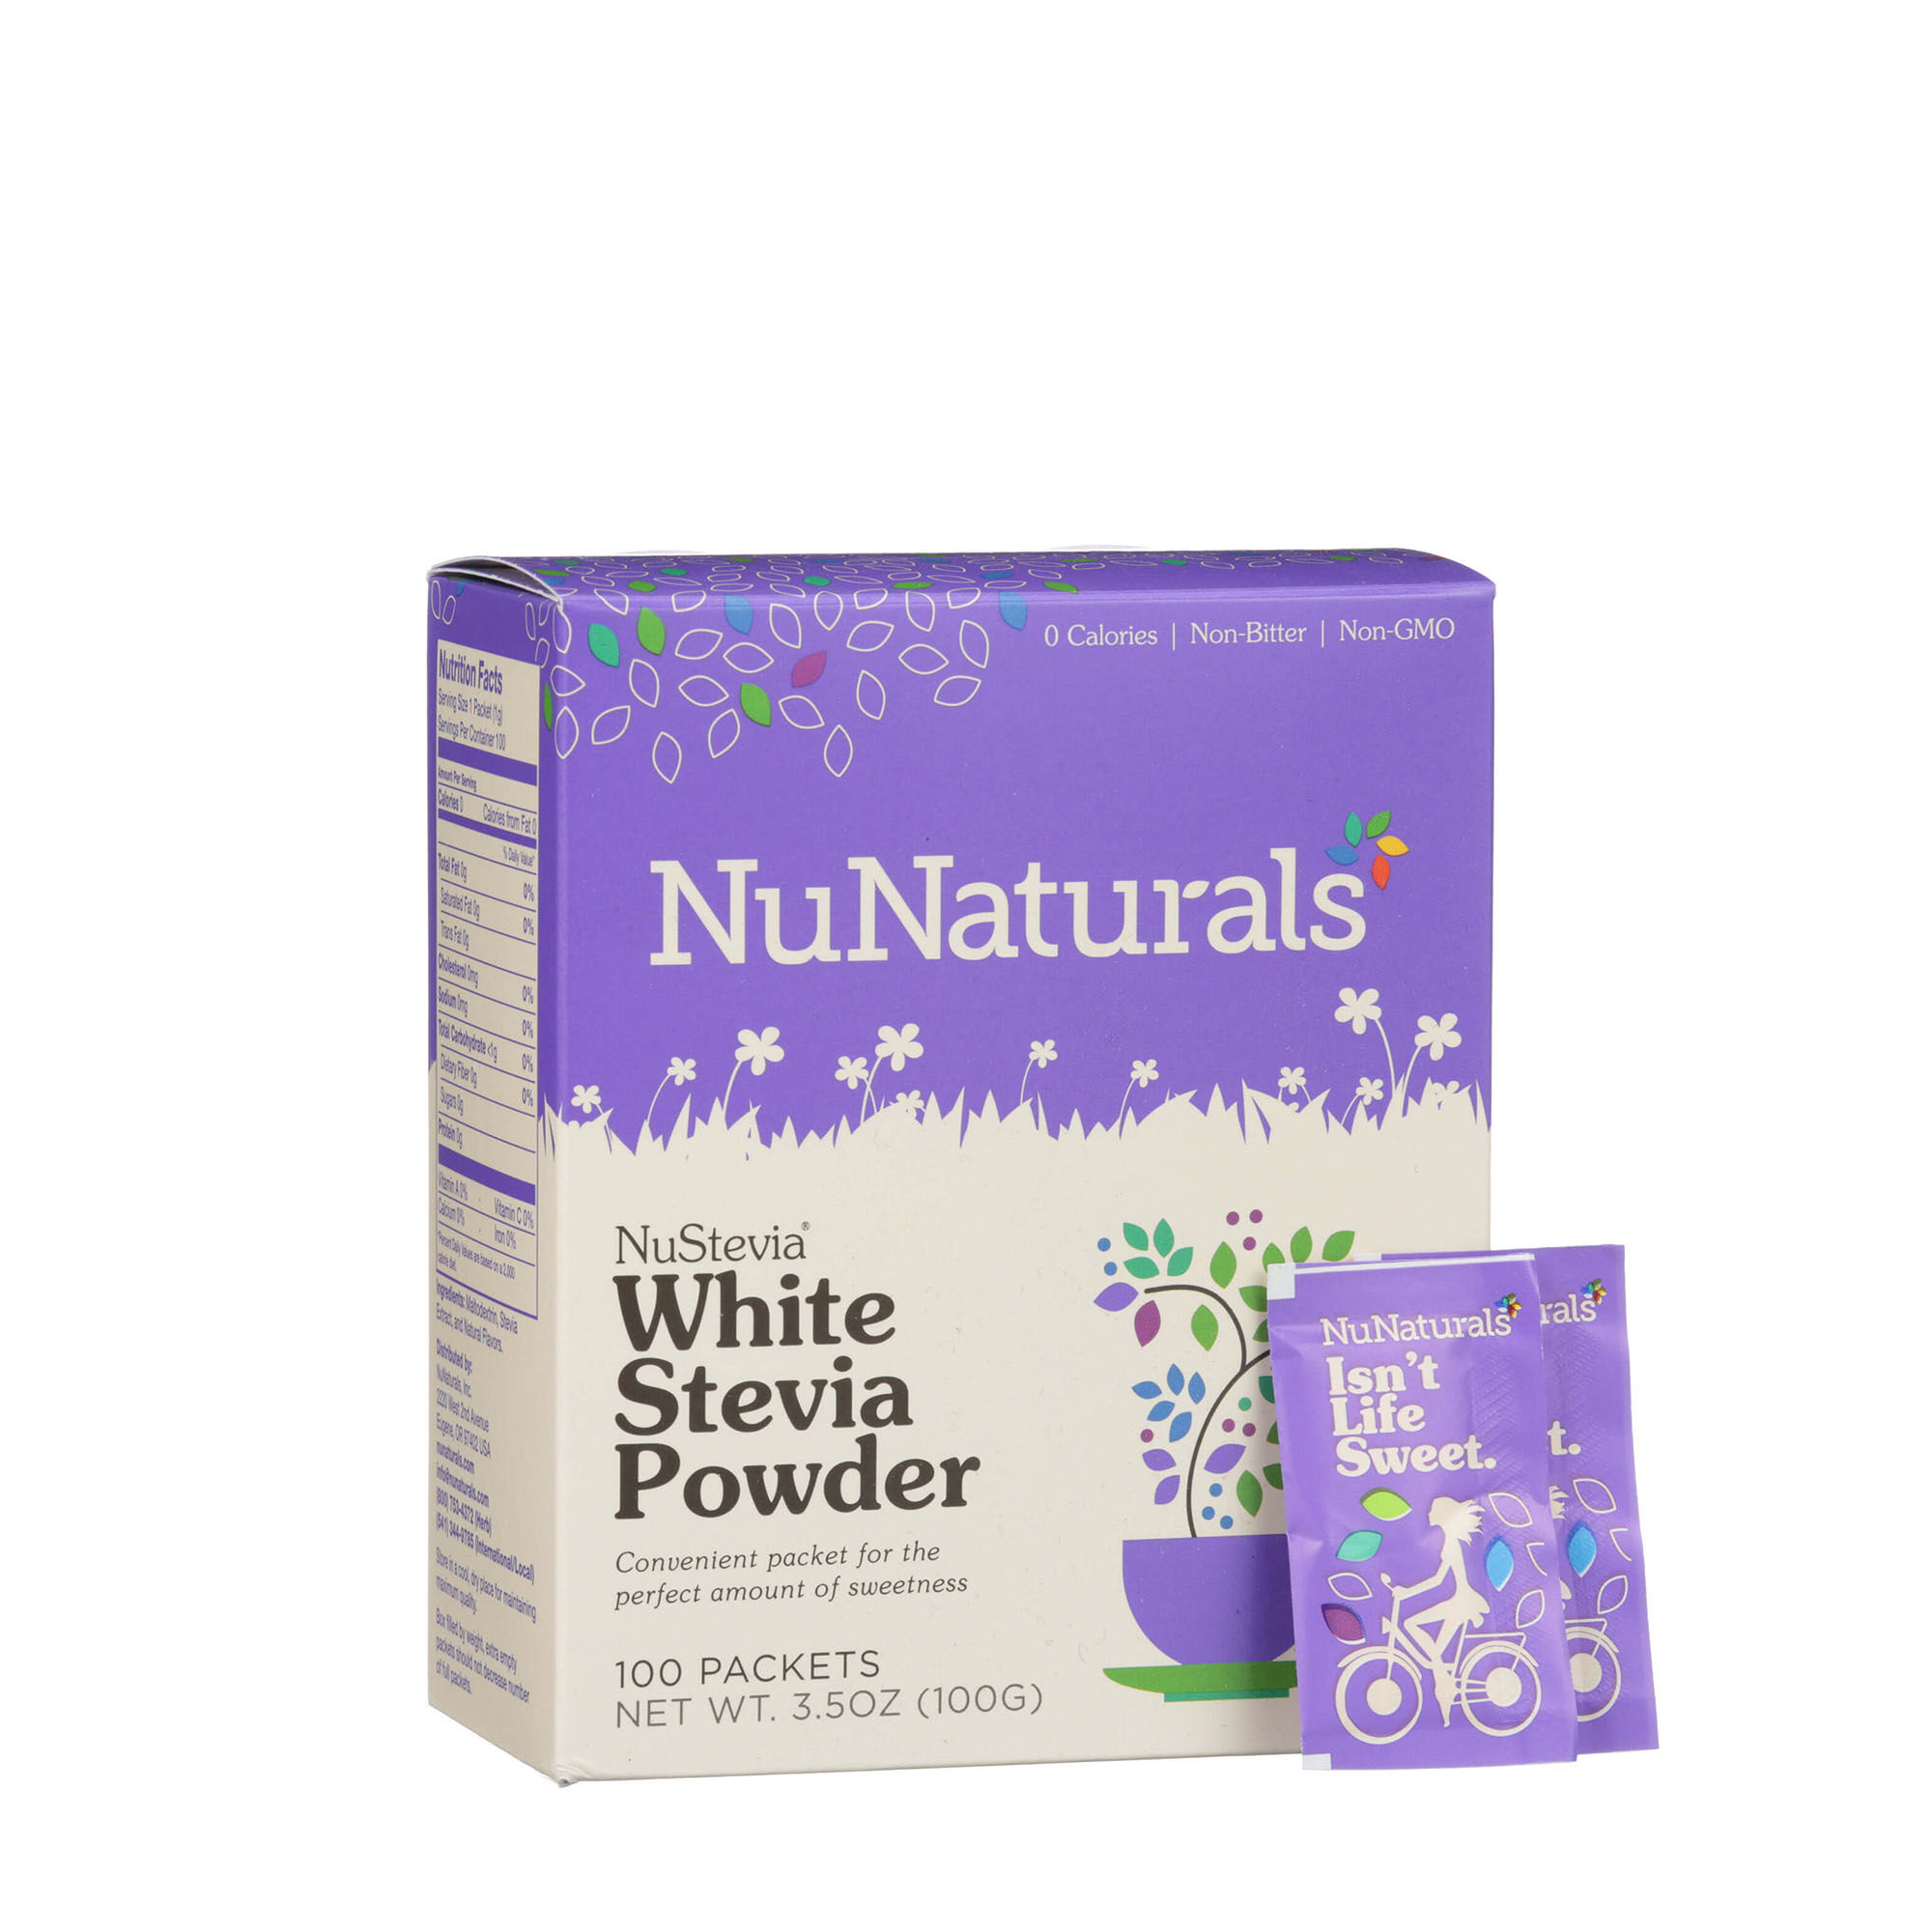 nustevia white stevia powder 100 packets nunaturals natural sweeteners shop your way. Black Bedroom Furniture Sets. Home Design Ideas